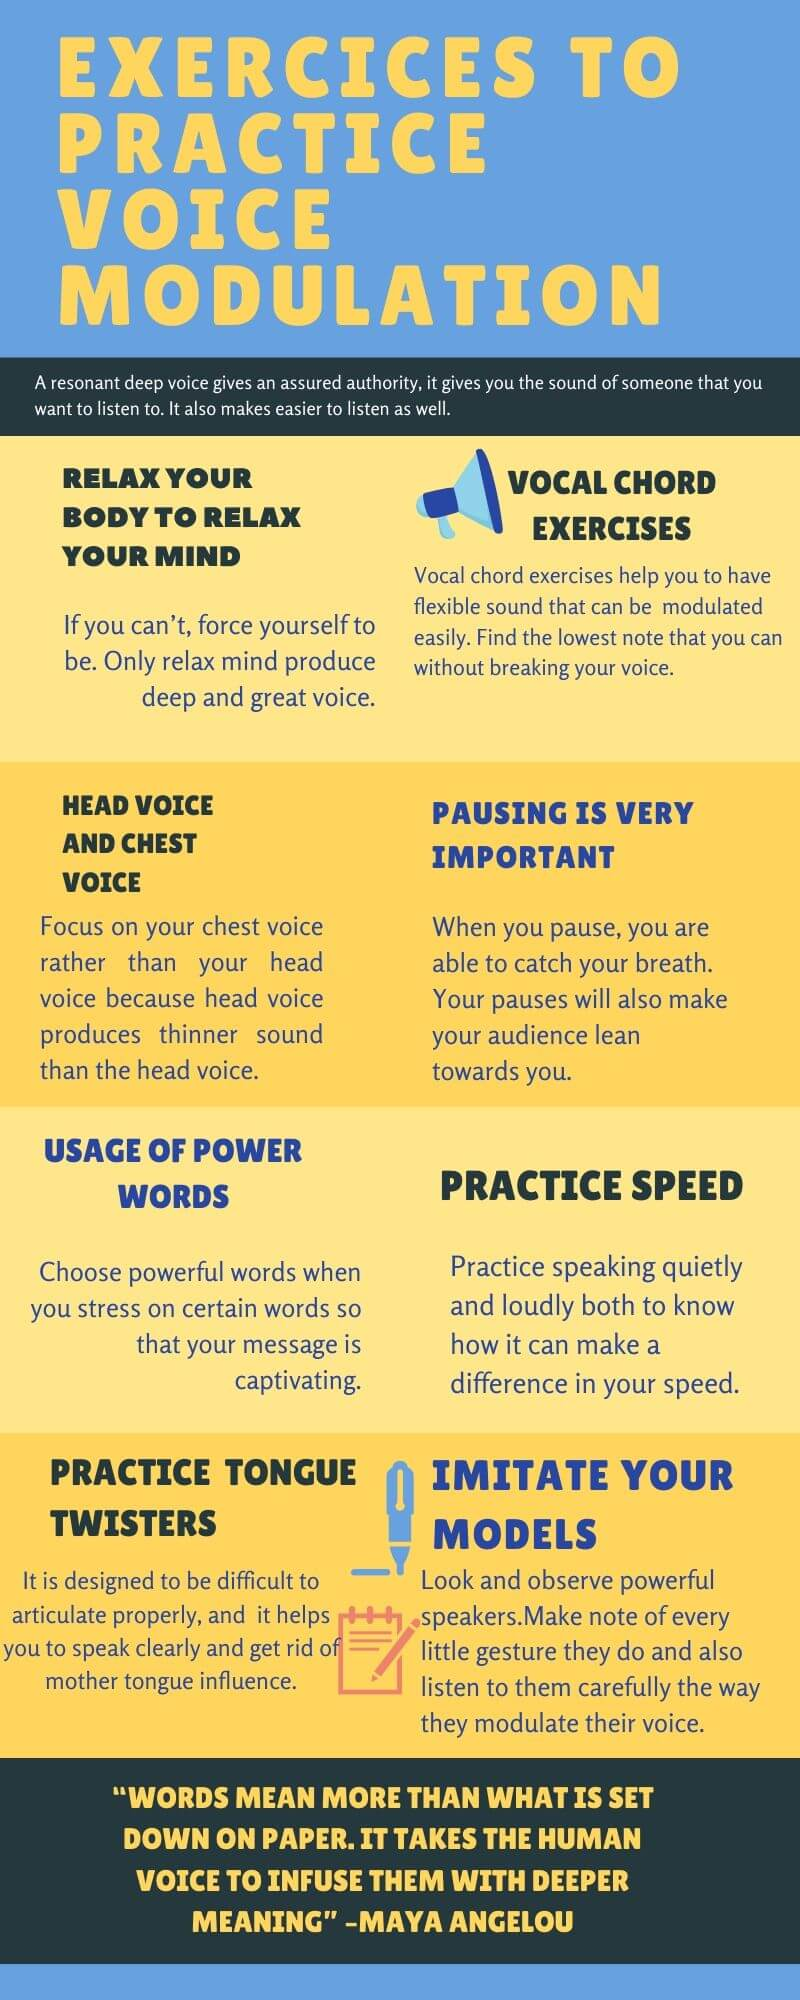 Practices for Voice Modulation